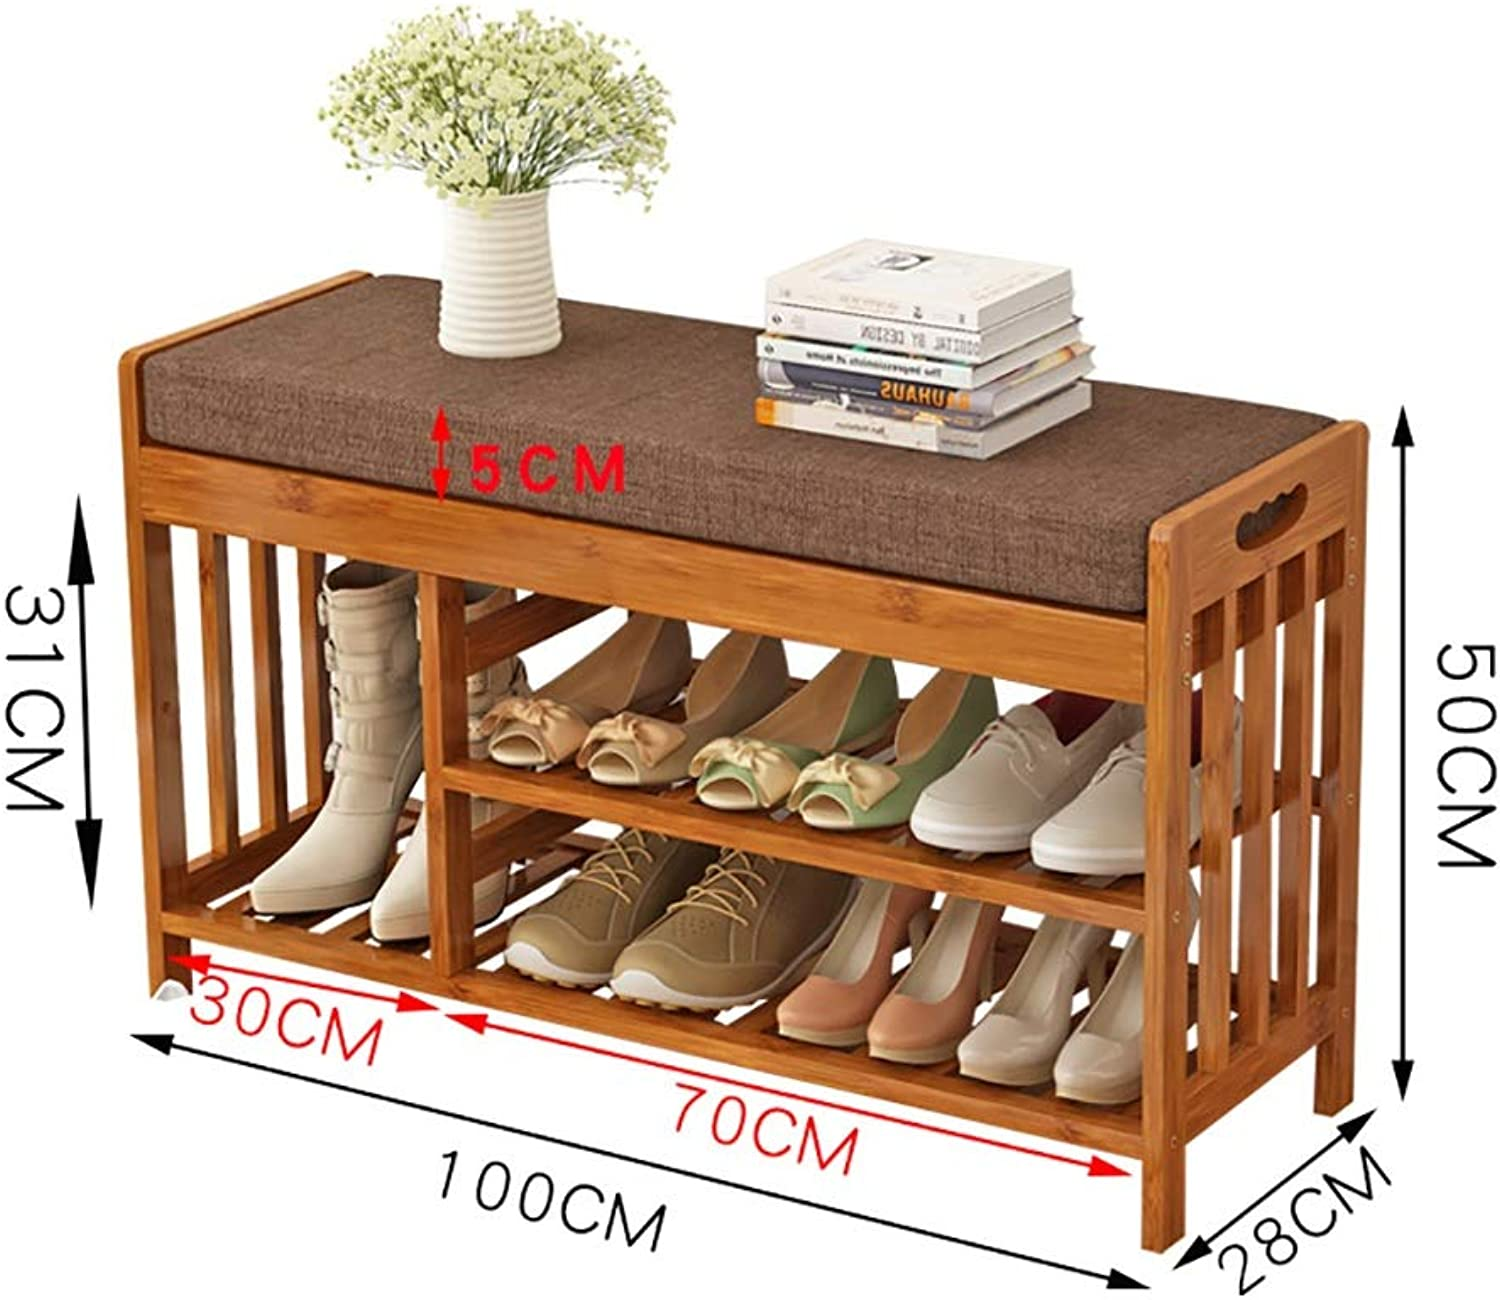 Entrance Door Change shoes Bench 2 Layer shoes Rack shoes Stool Storage Stool Frame Sofa Stool shoes Cabinet Test shoes Bench Wearing a shoes Bench Bamboo (Size   100  28  50cm)